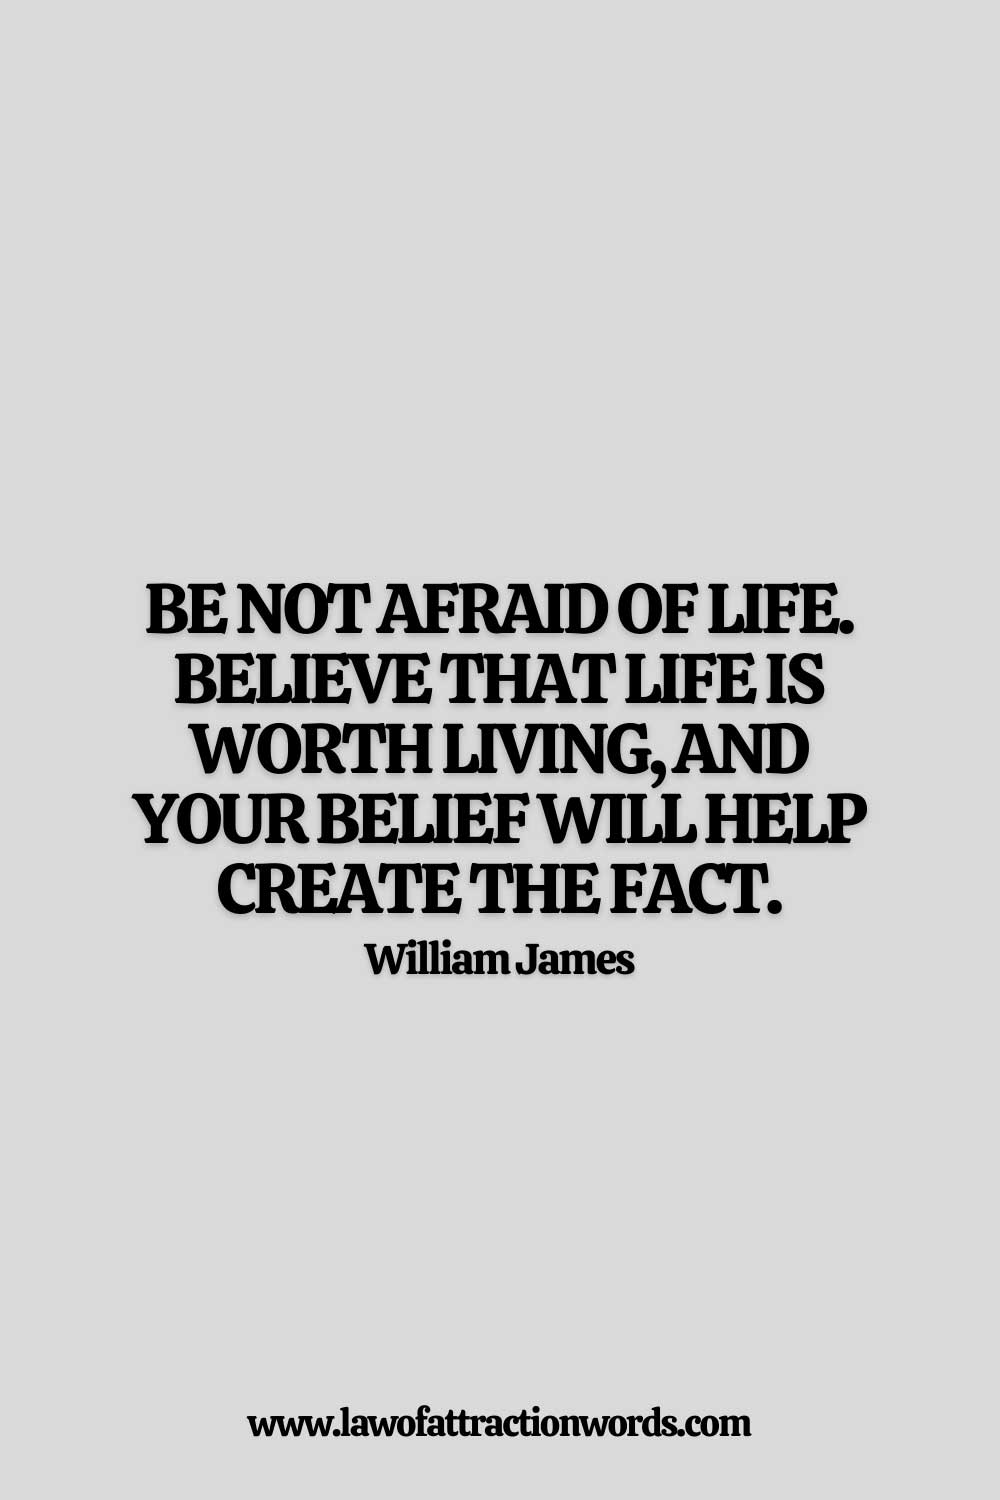 Life Quotes To Overcome Fear and Anxiety